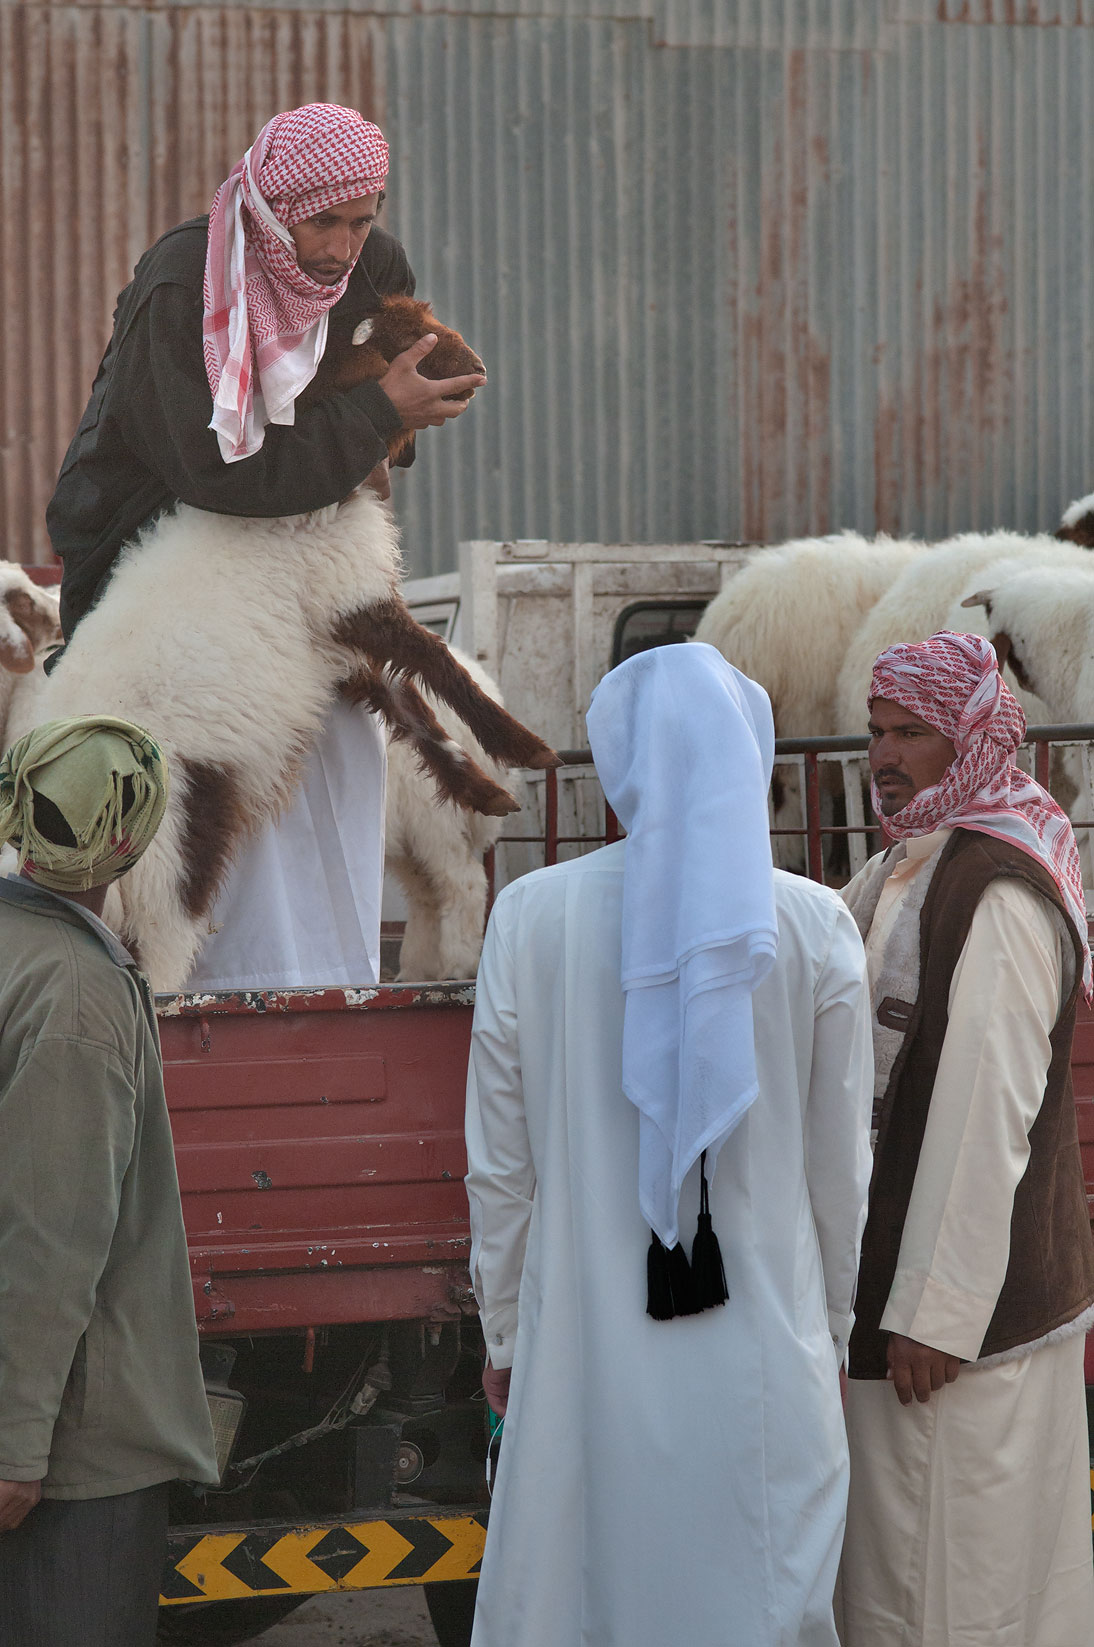 A prospective buyer asks to open the goat's mouth...Wholesale Markets area. Doha, Qatar